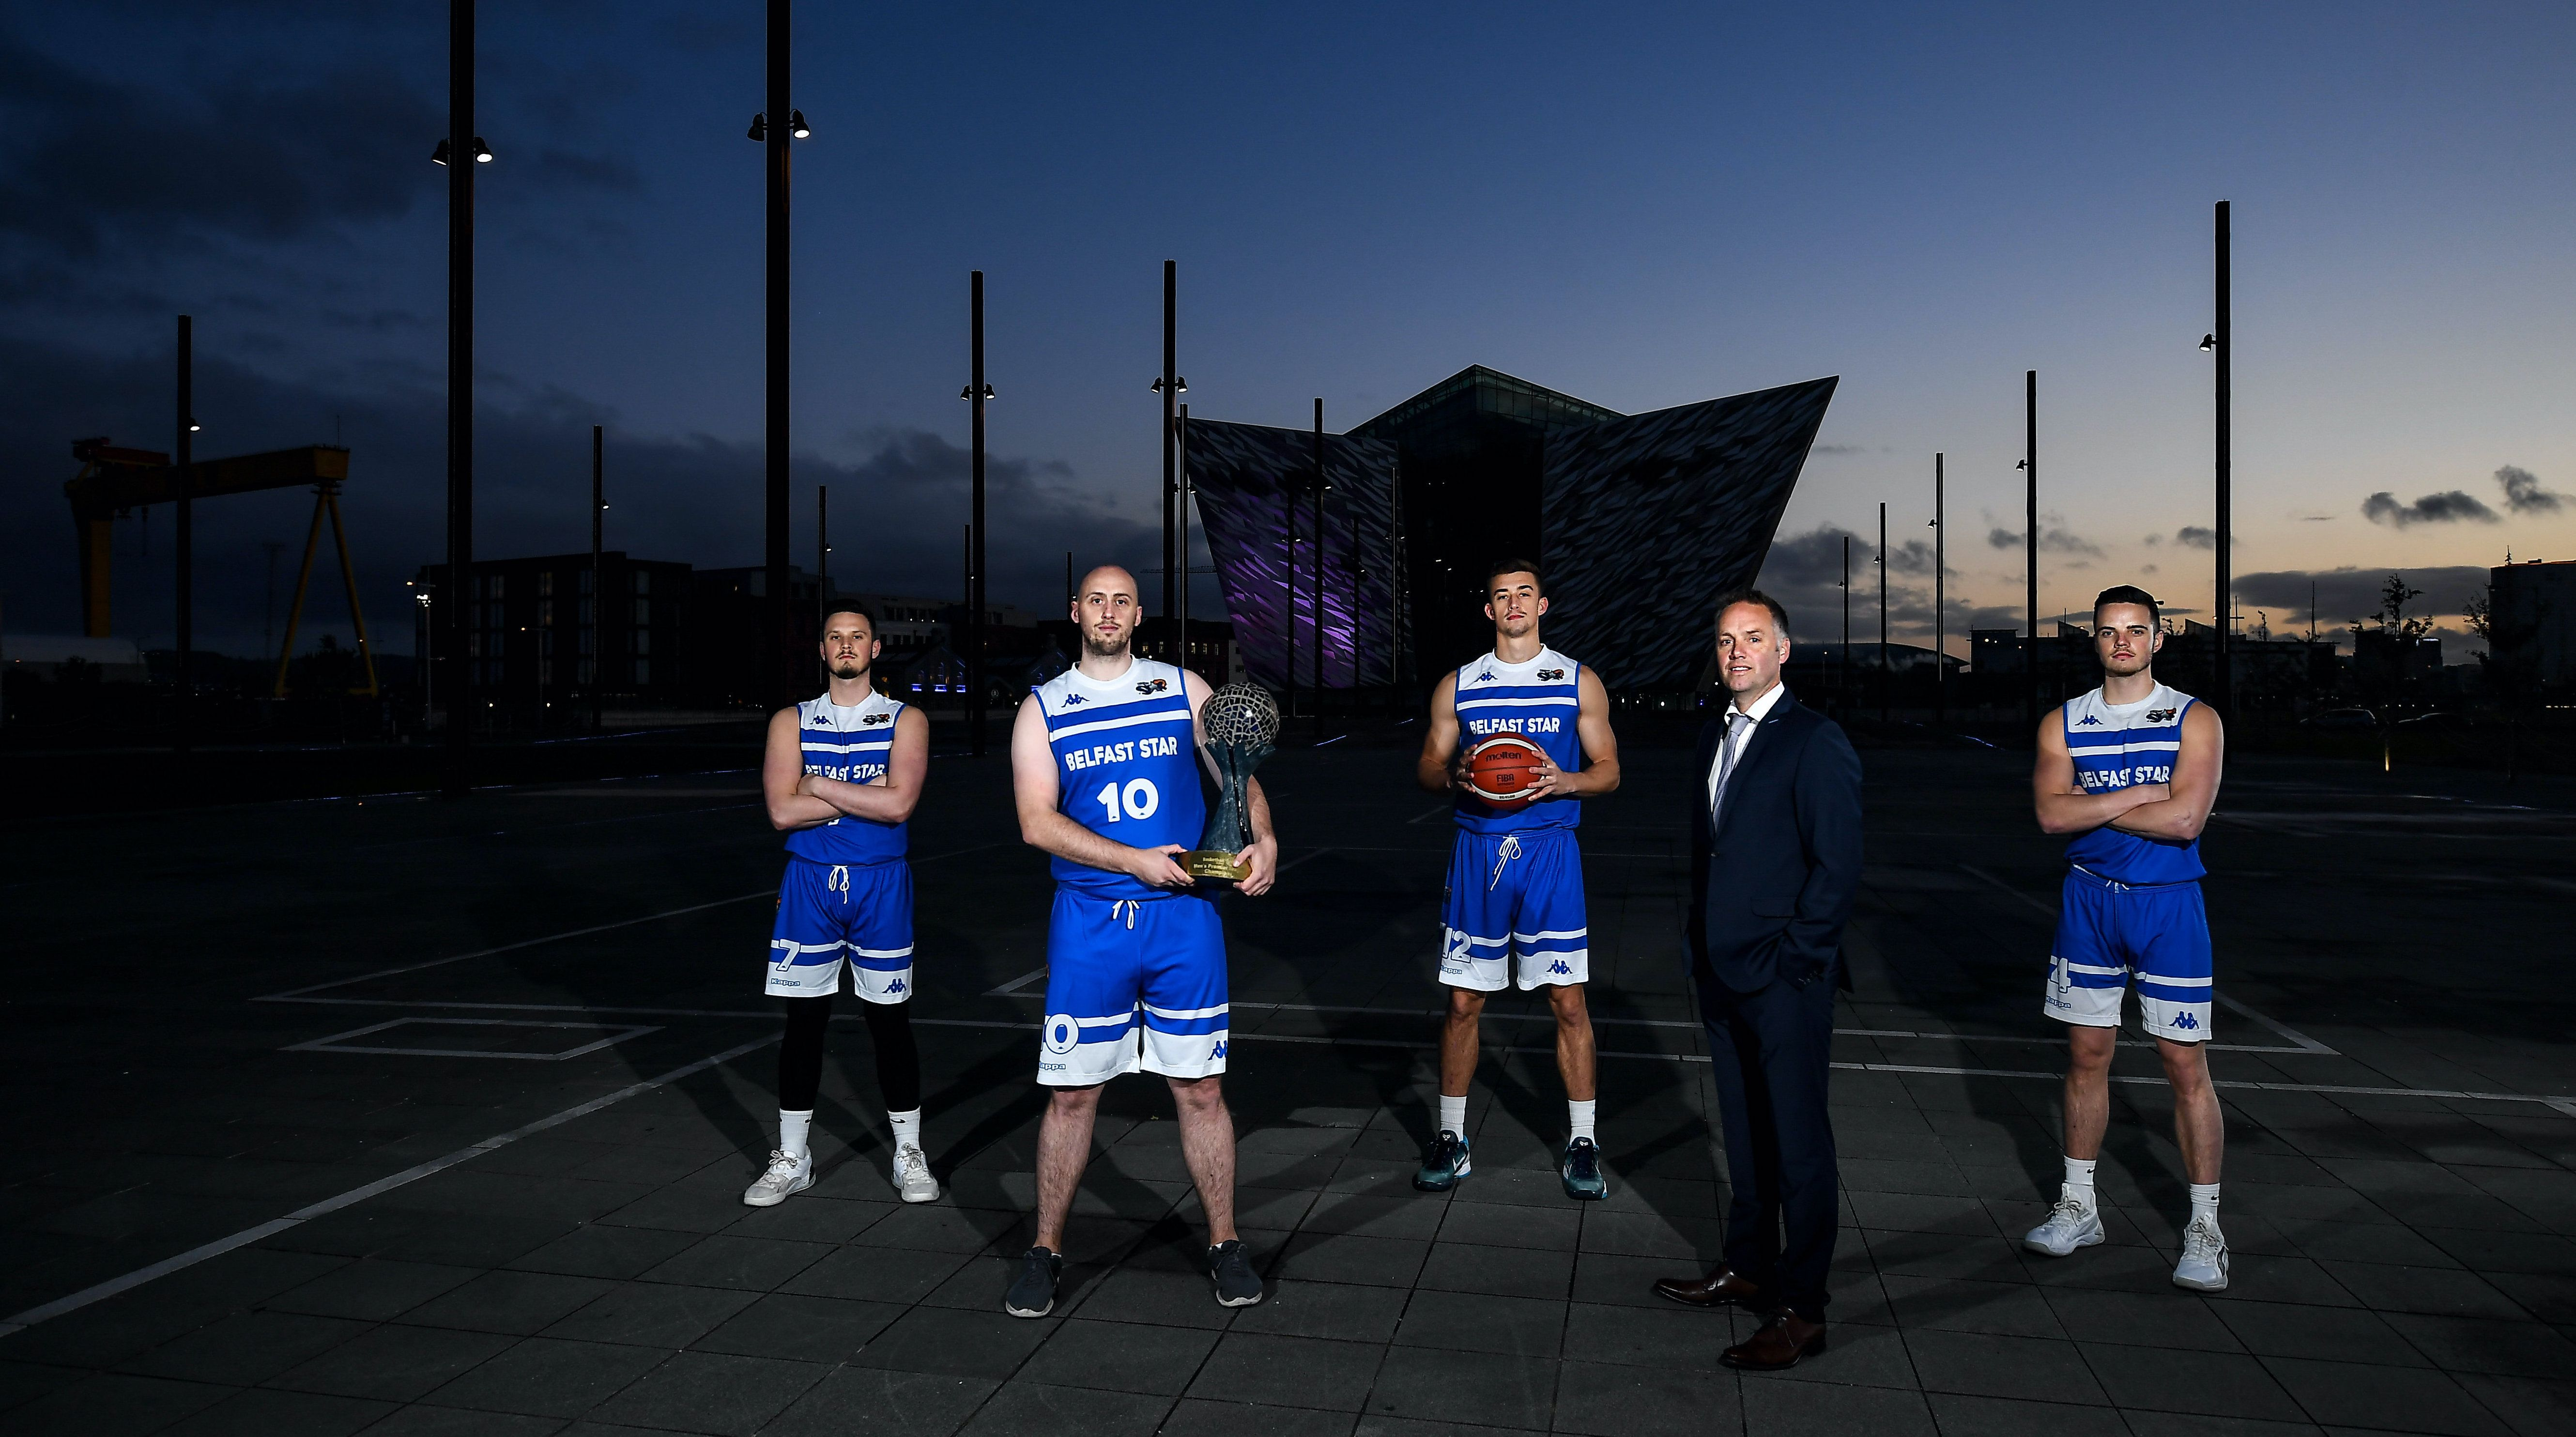 Belfast Star are the defending Super League champions